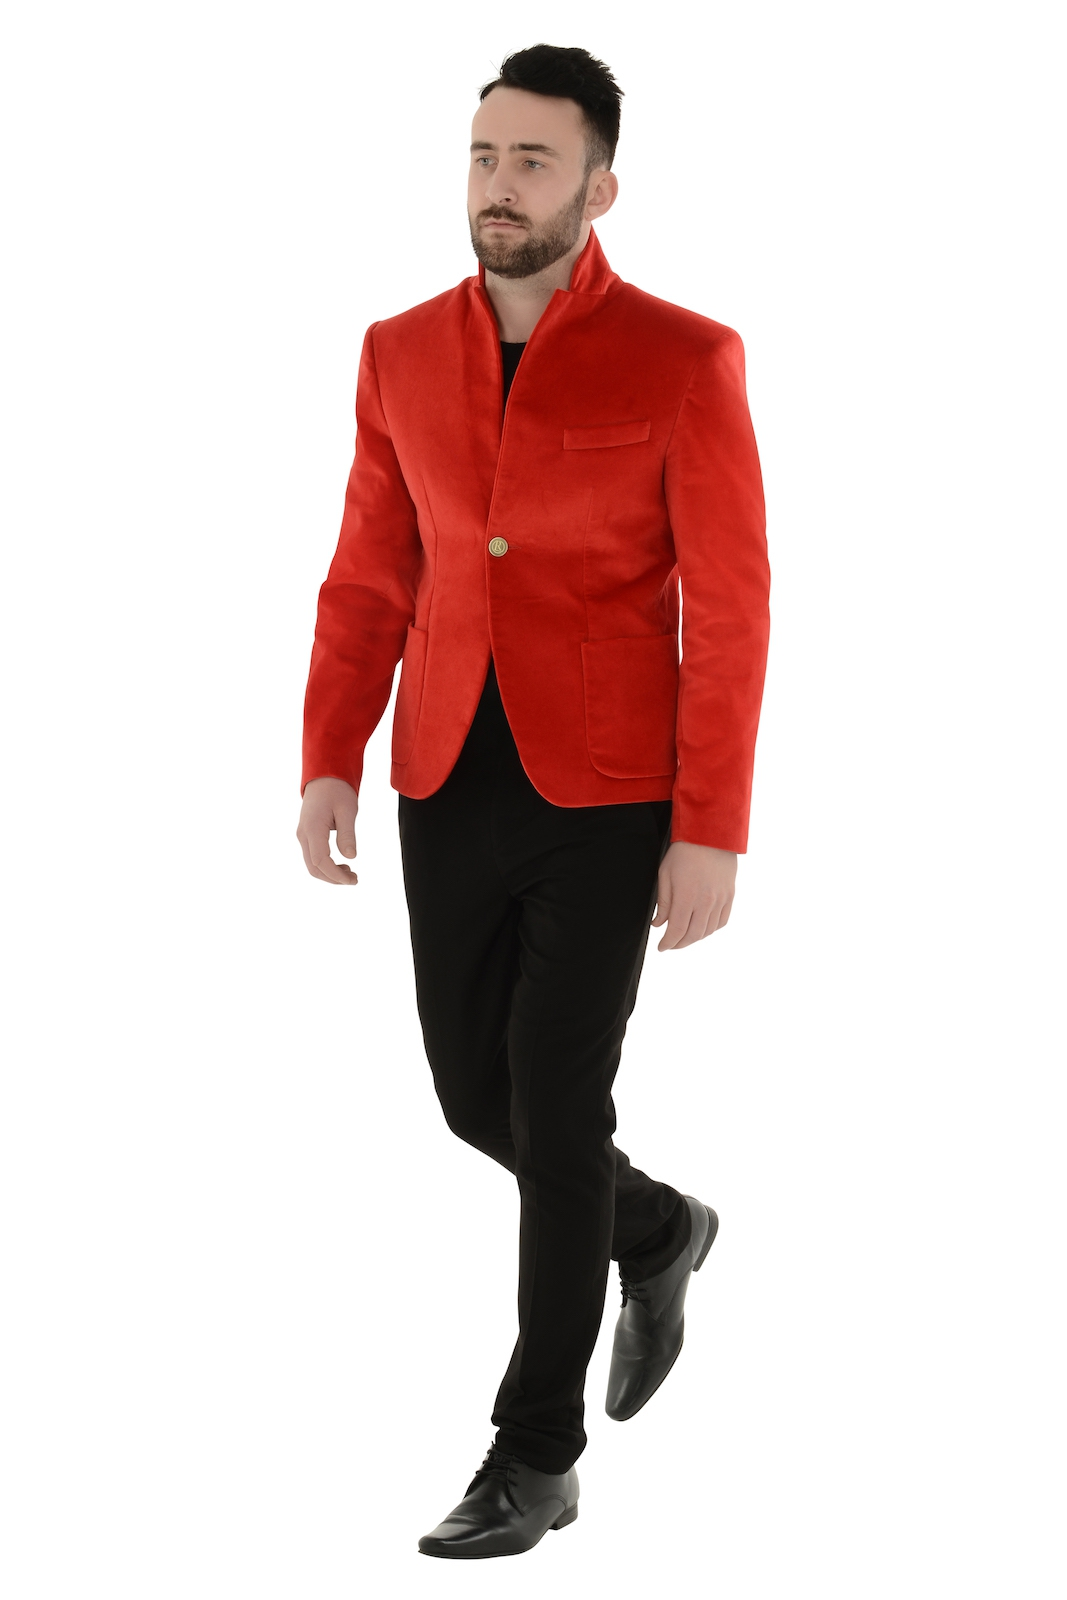 Mens Red Velvet Blazer